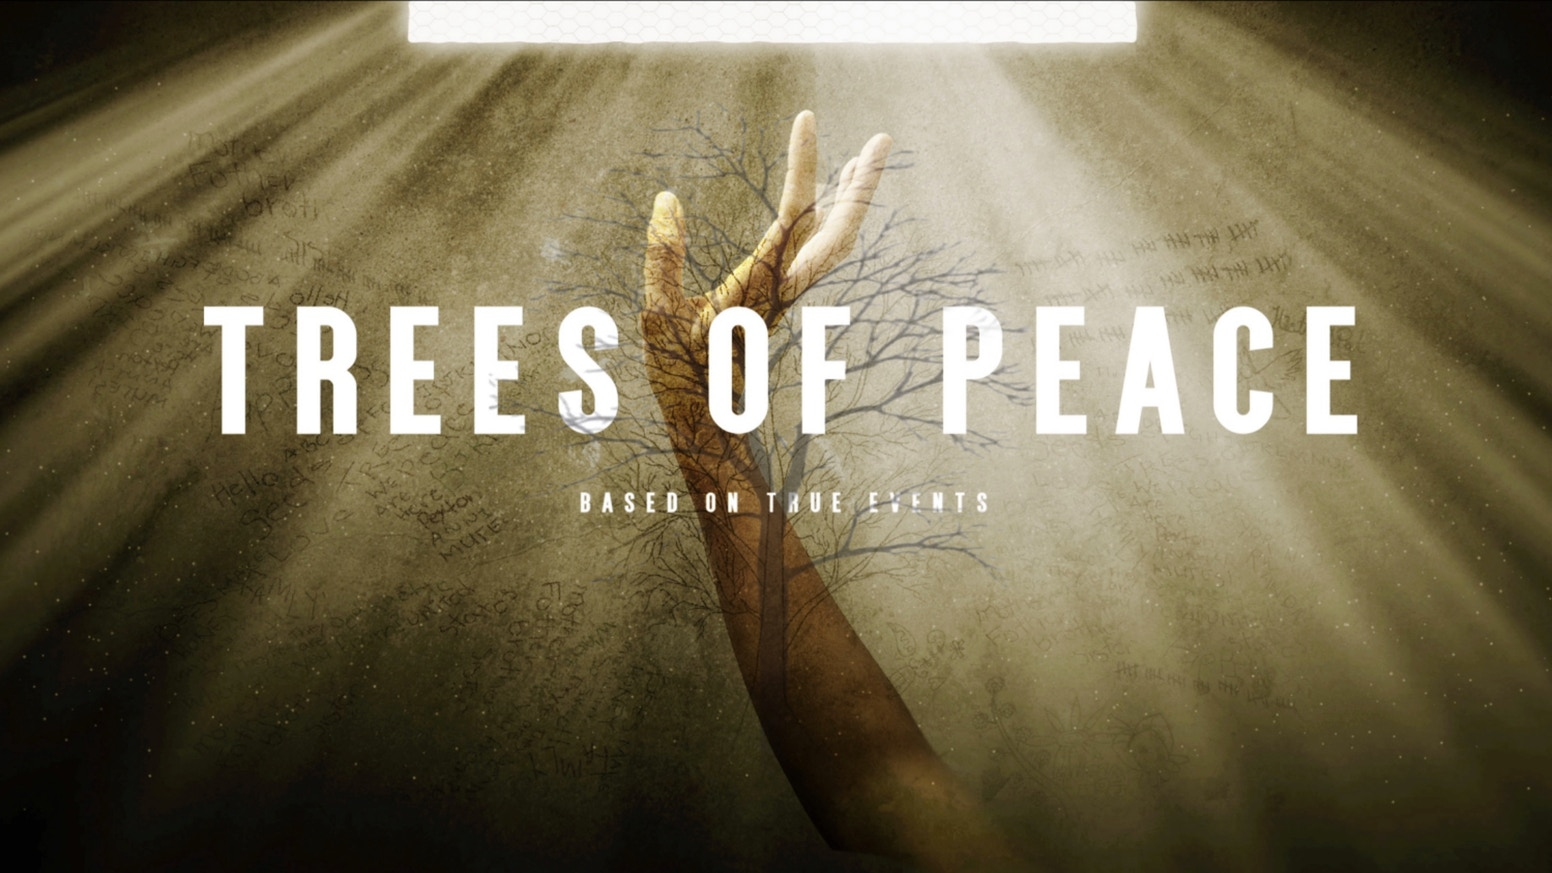 A feature film about four women who find unity, hope, and strength through one of the world's darkest tragedies.